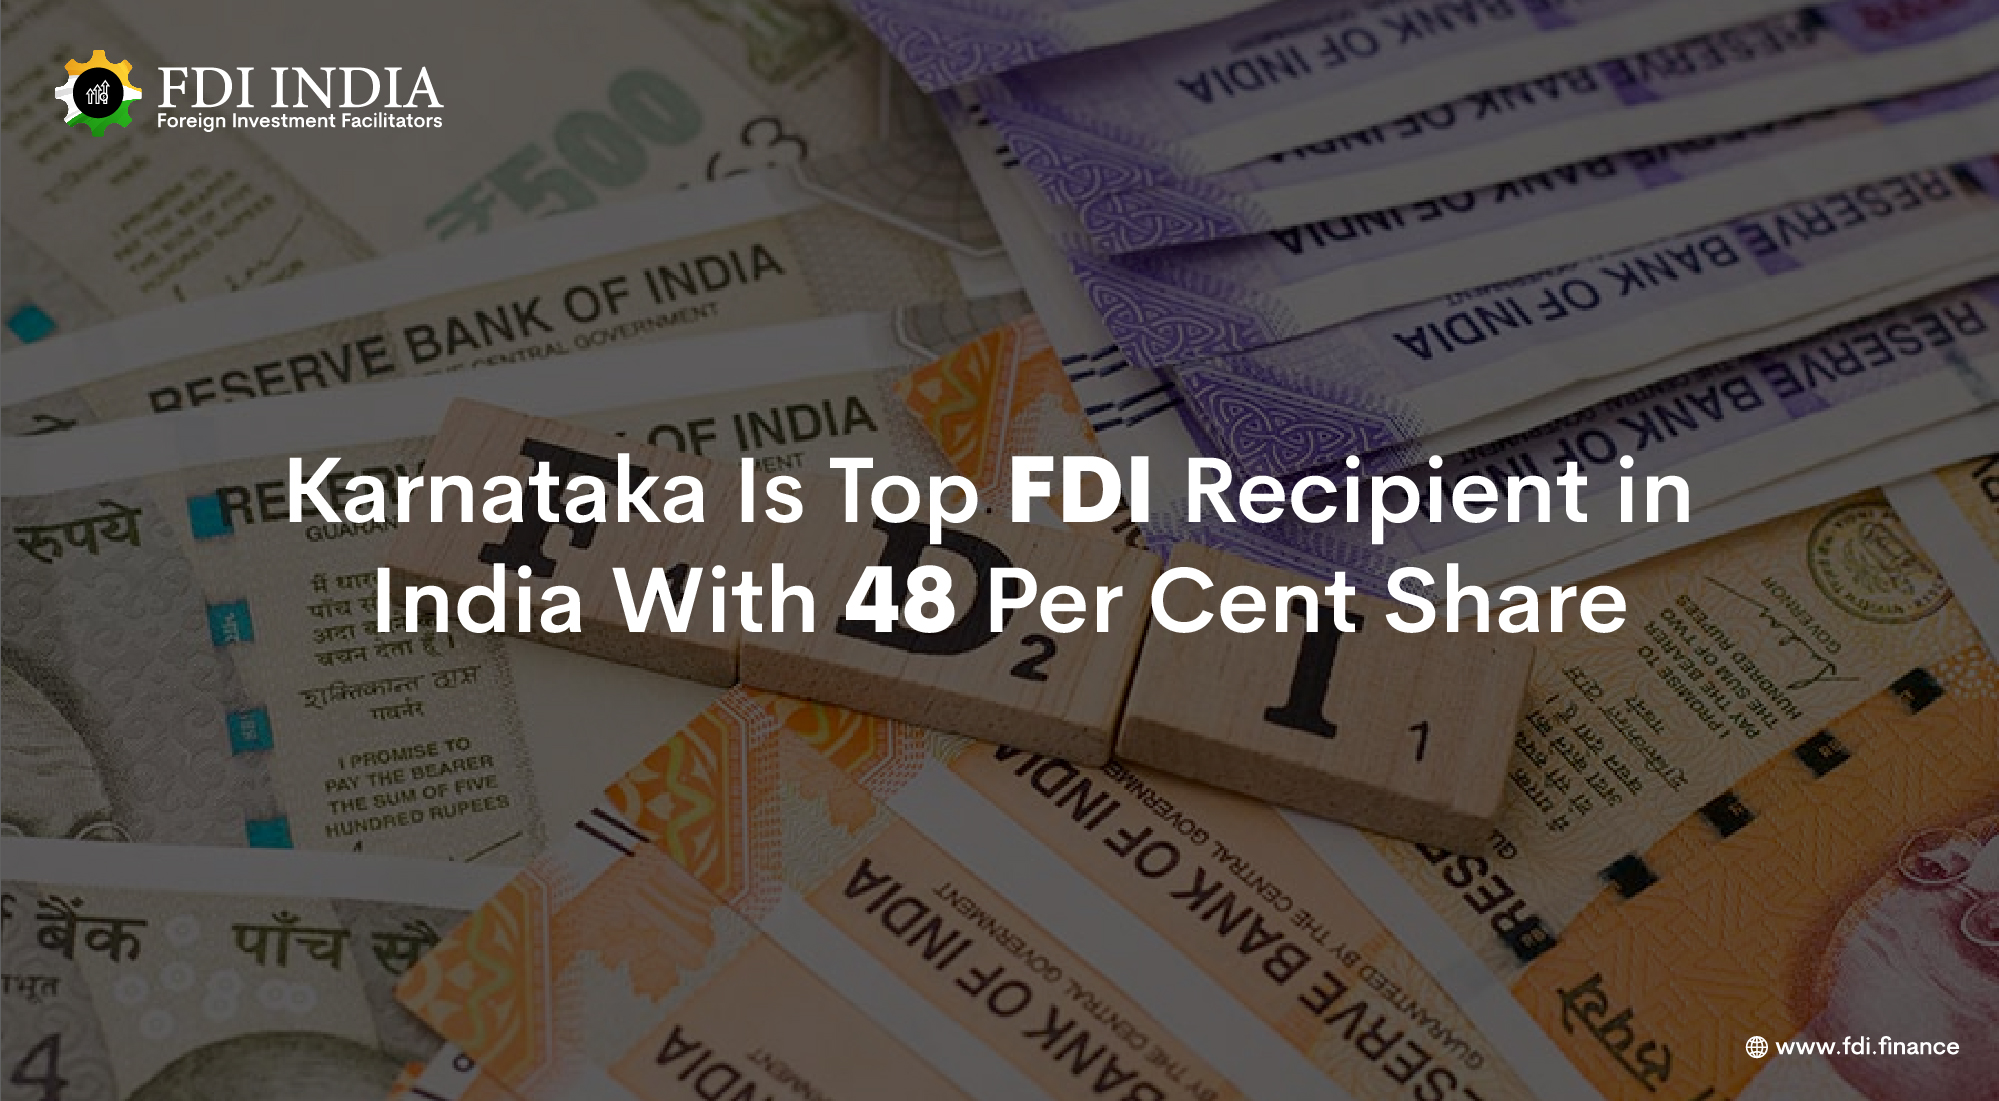 Karnataka Is Top FDI Recipient in India With 48 Per Cent Share